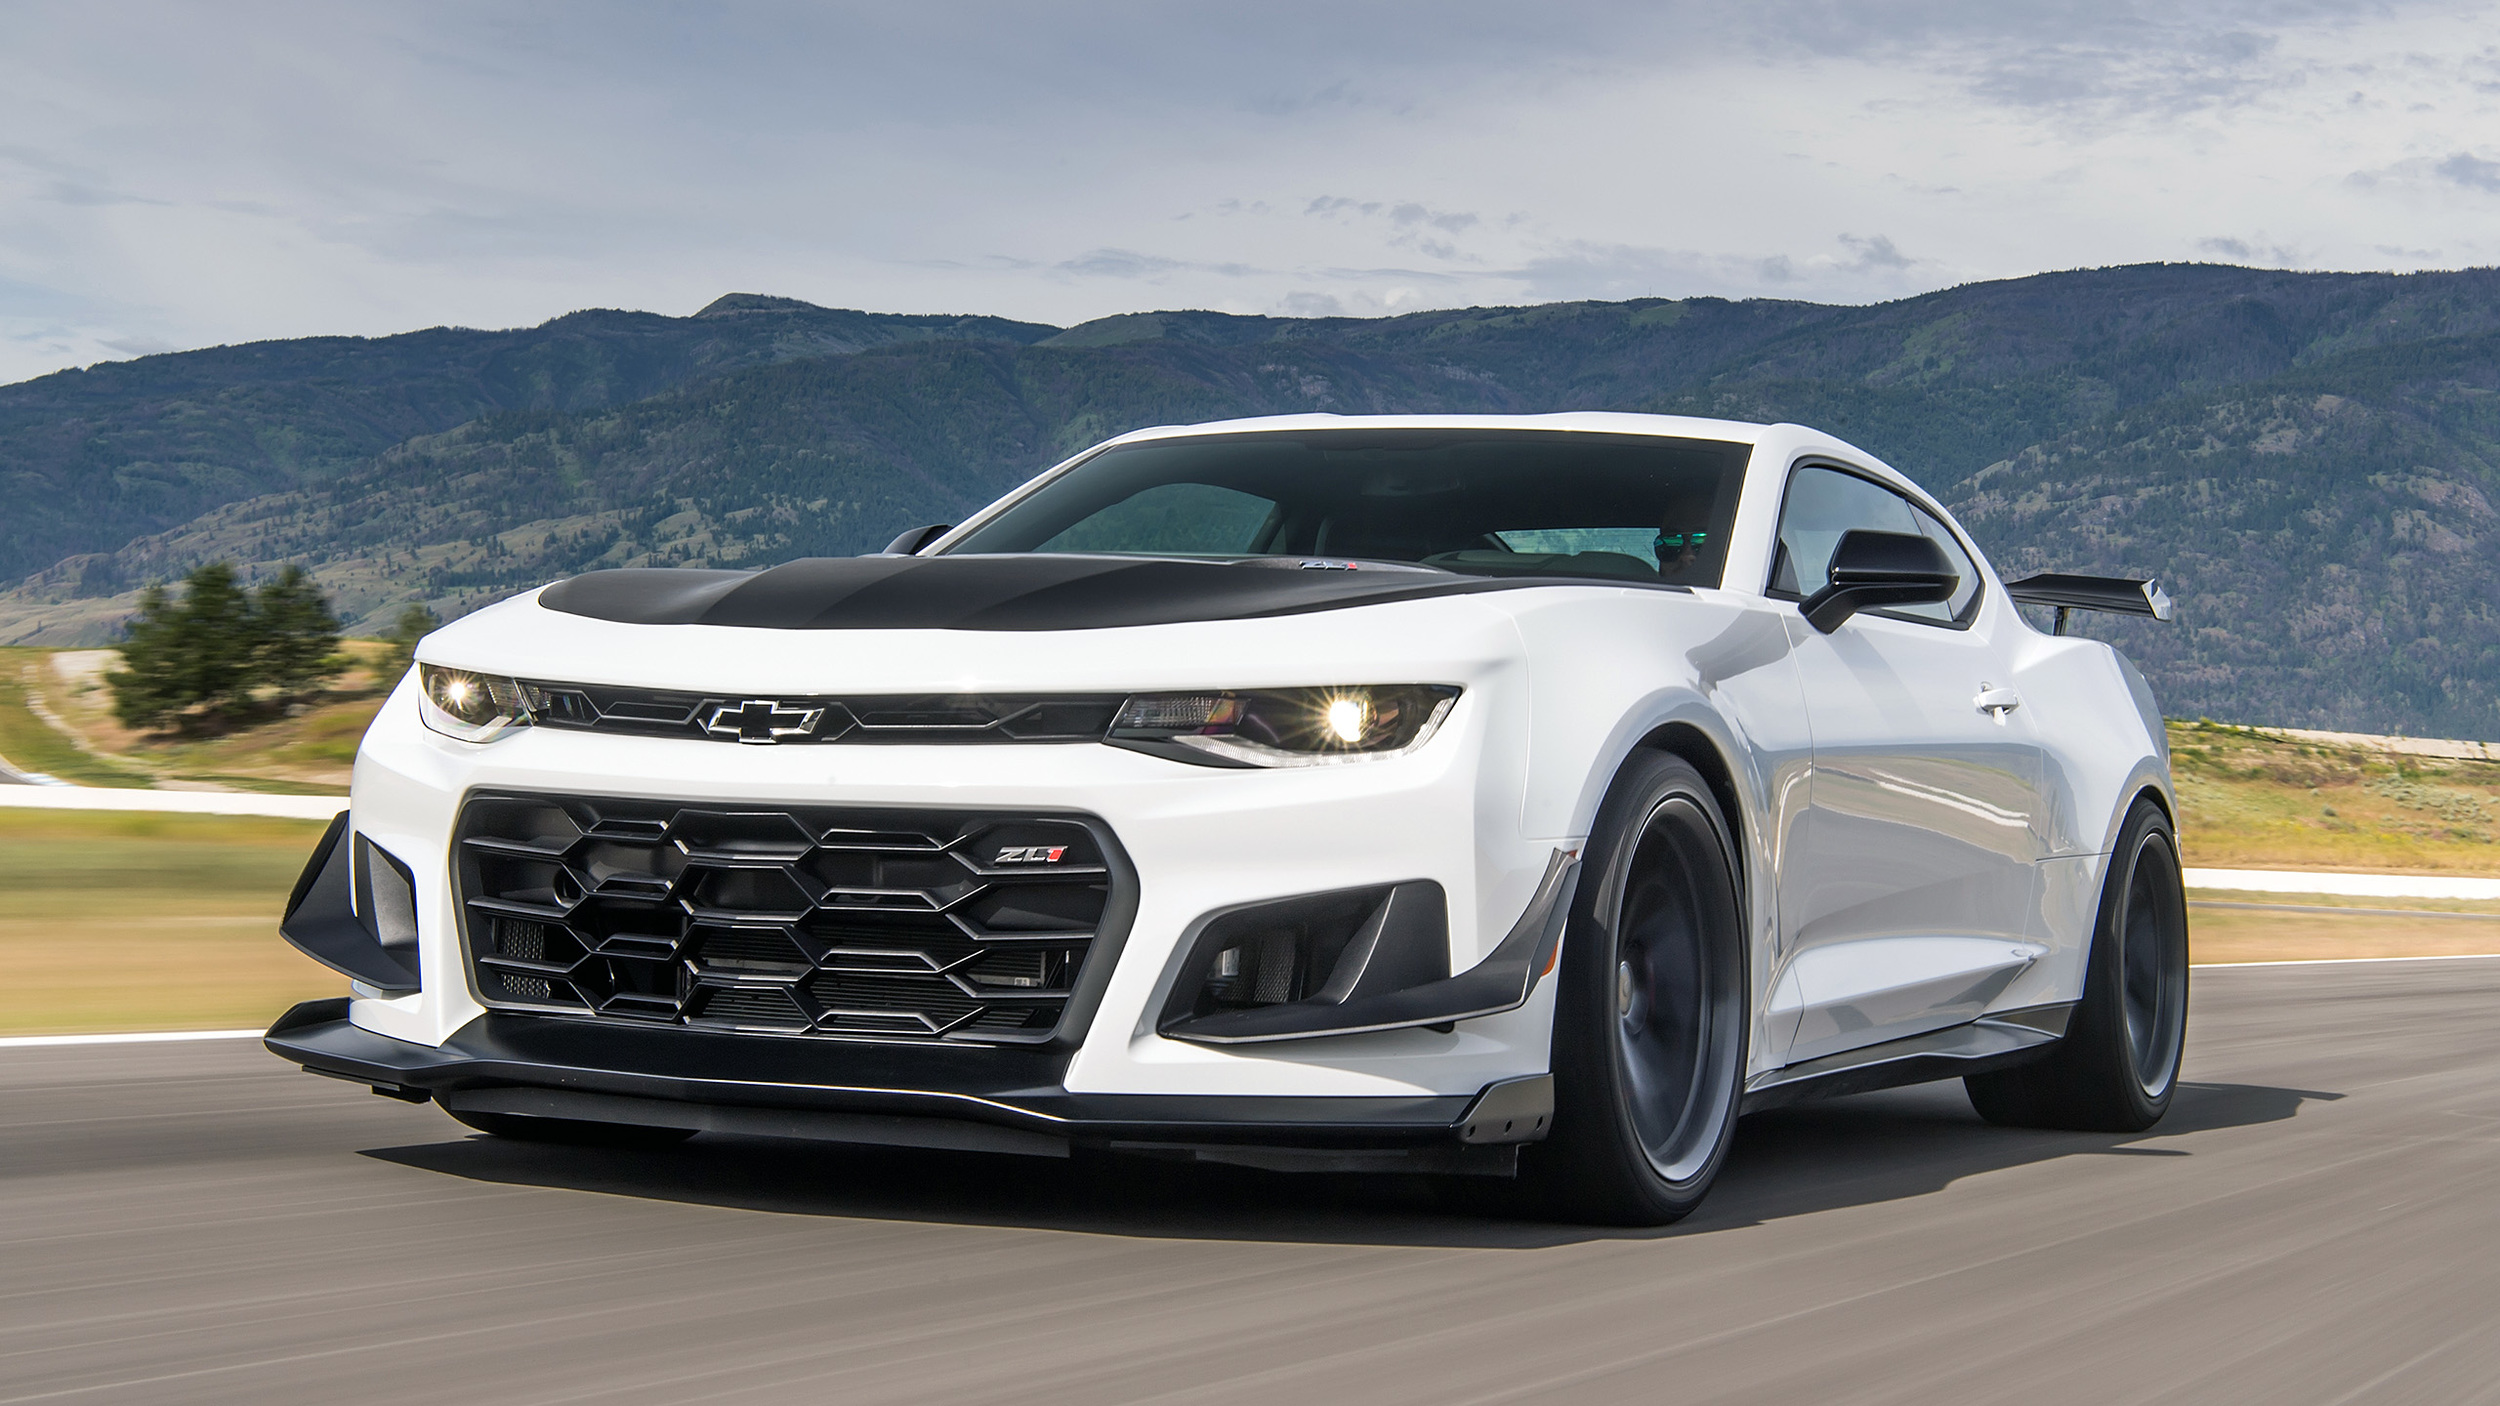 Aero And The Beast 2018 Chevy Camaro Zl1 1le First Drive Autoblog